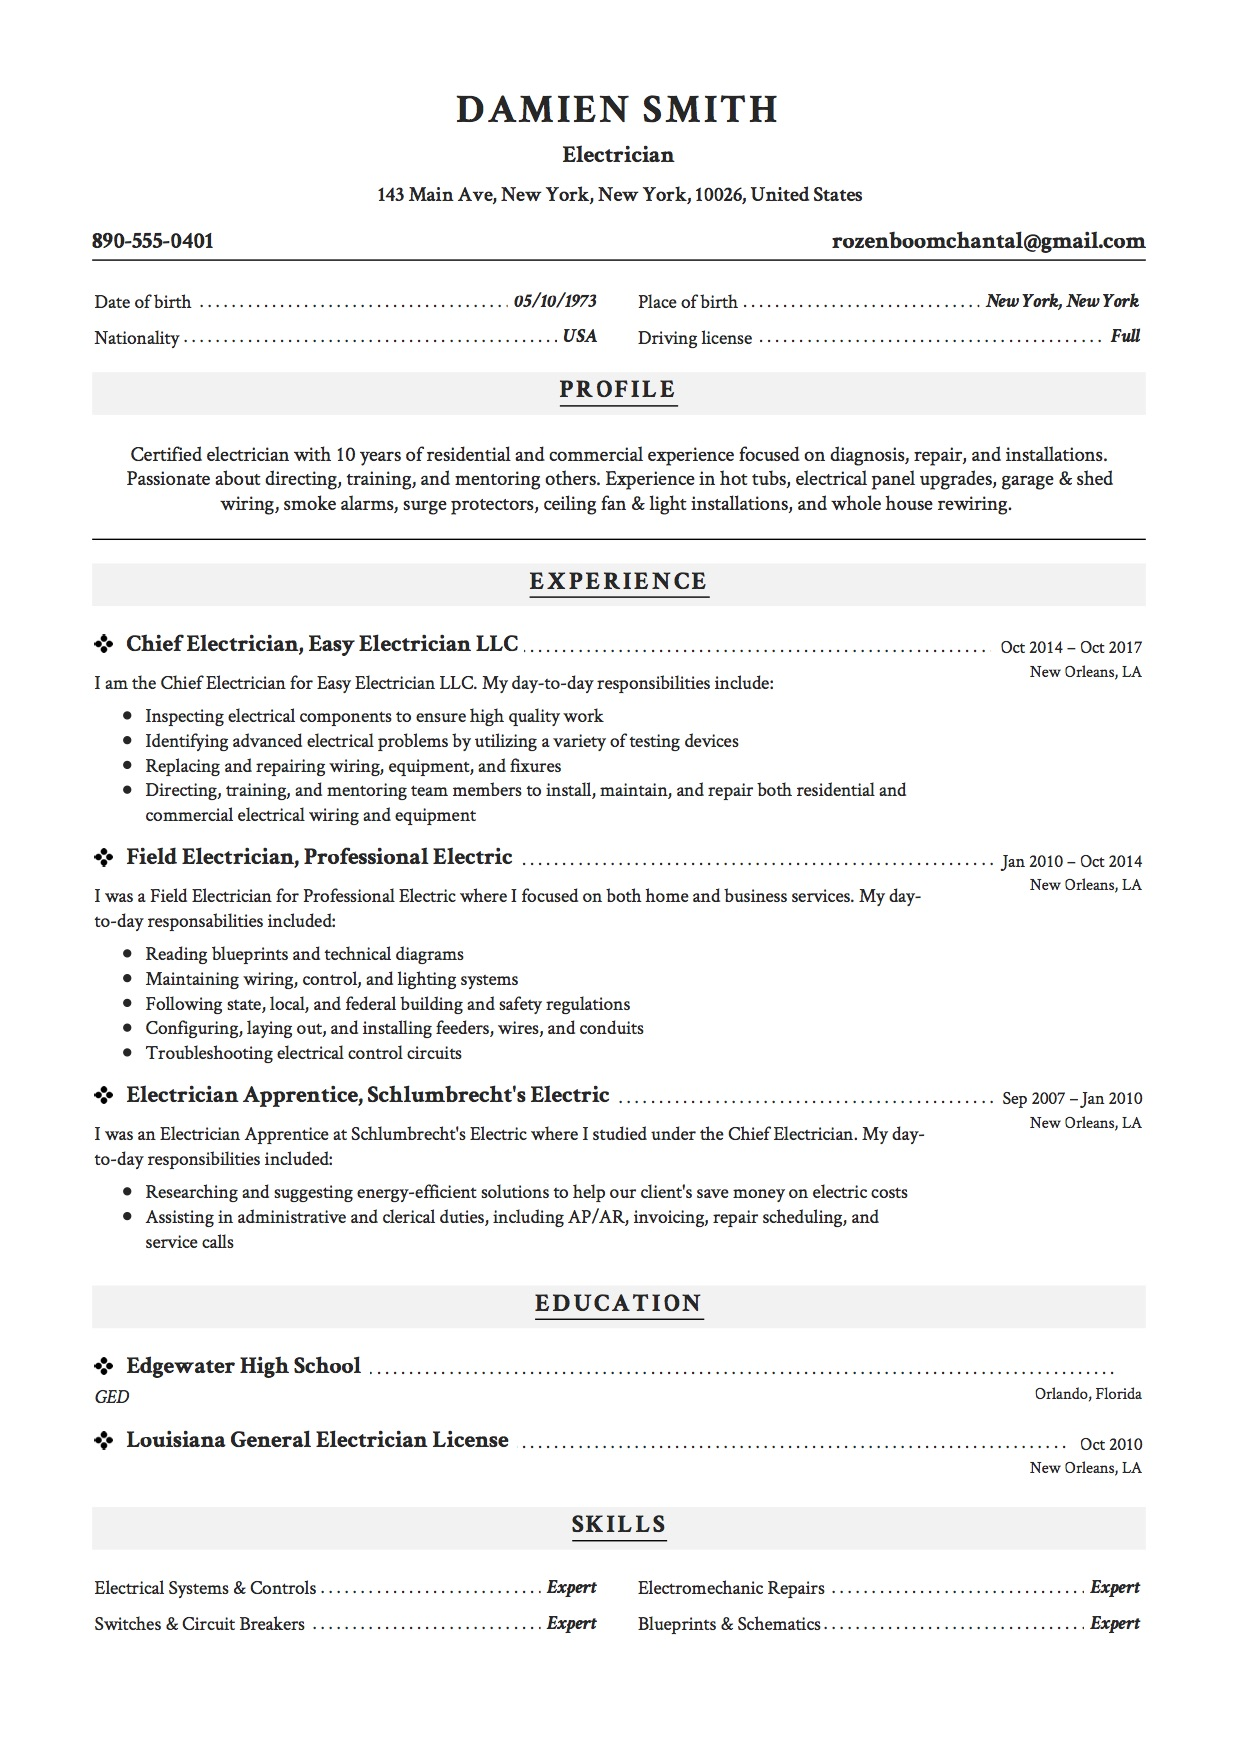 12 Electrician Resume Sample s 2018 Free Downloads